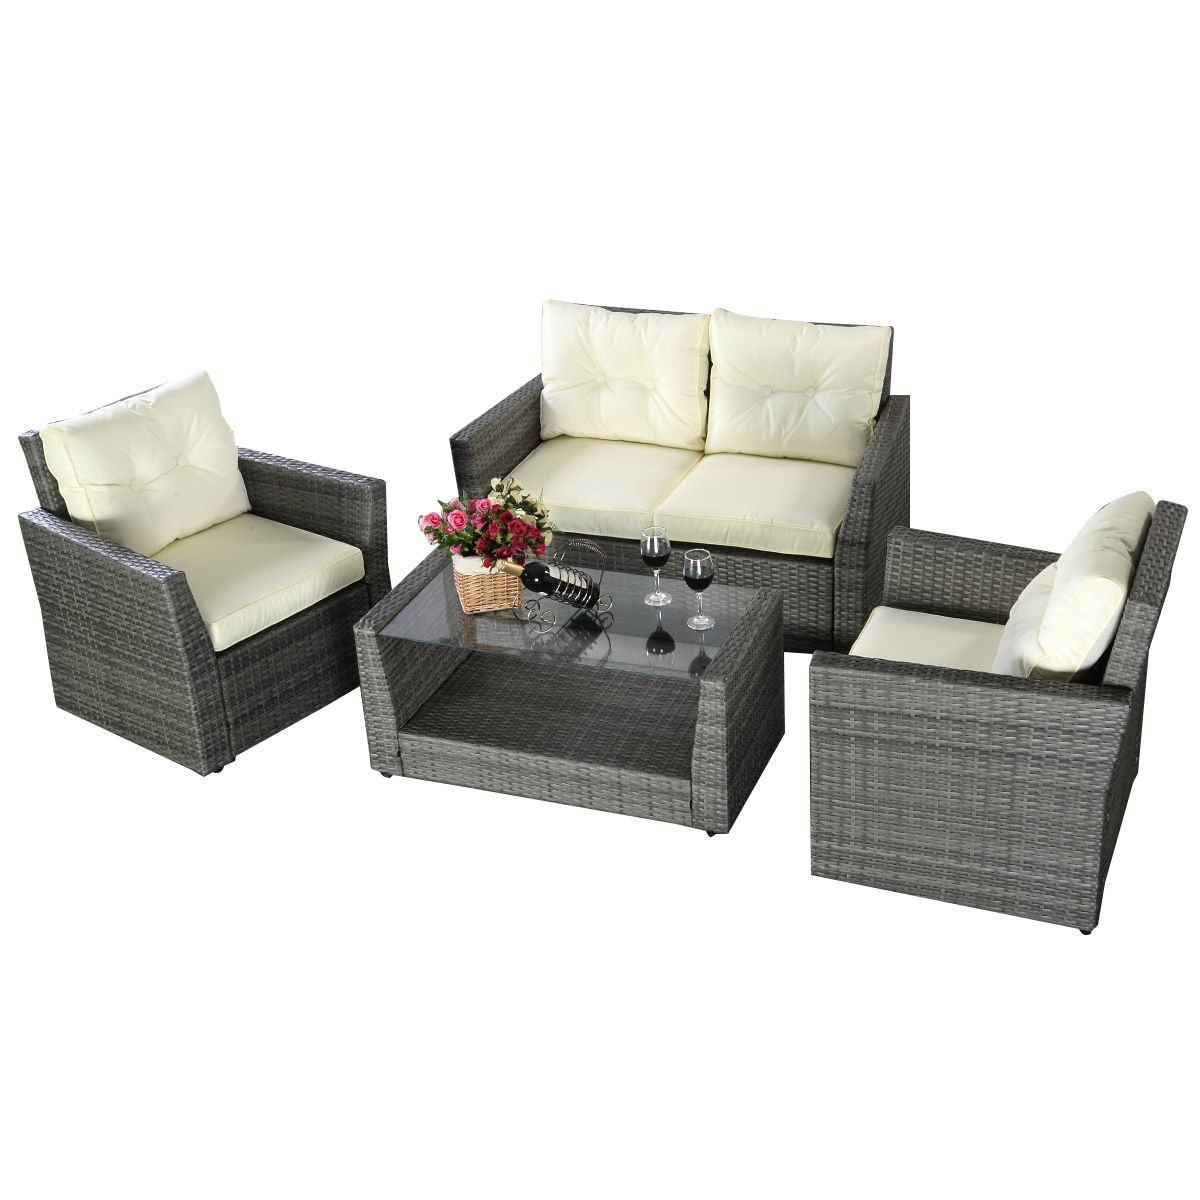 GHP 4 Pcs Gray Wicker Rattan Sofa Furniture Set Patio/Garden w Cushioned Seat